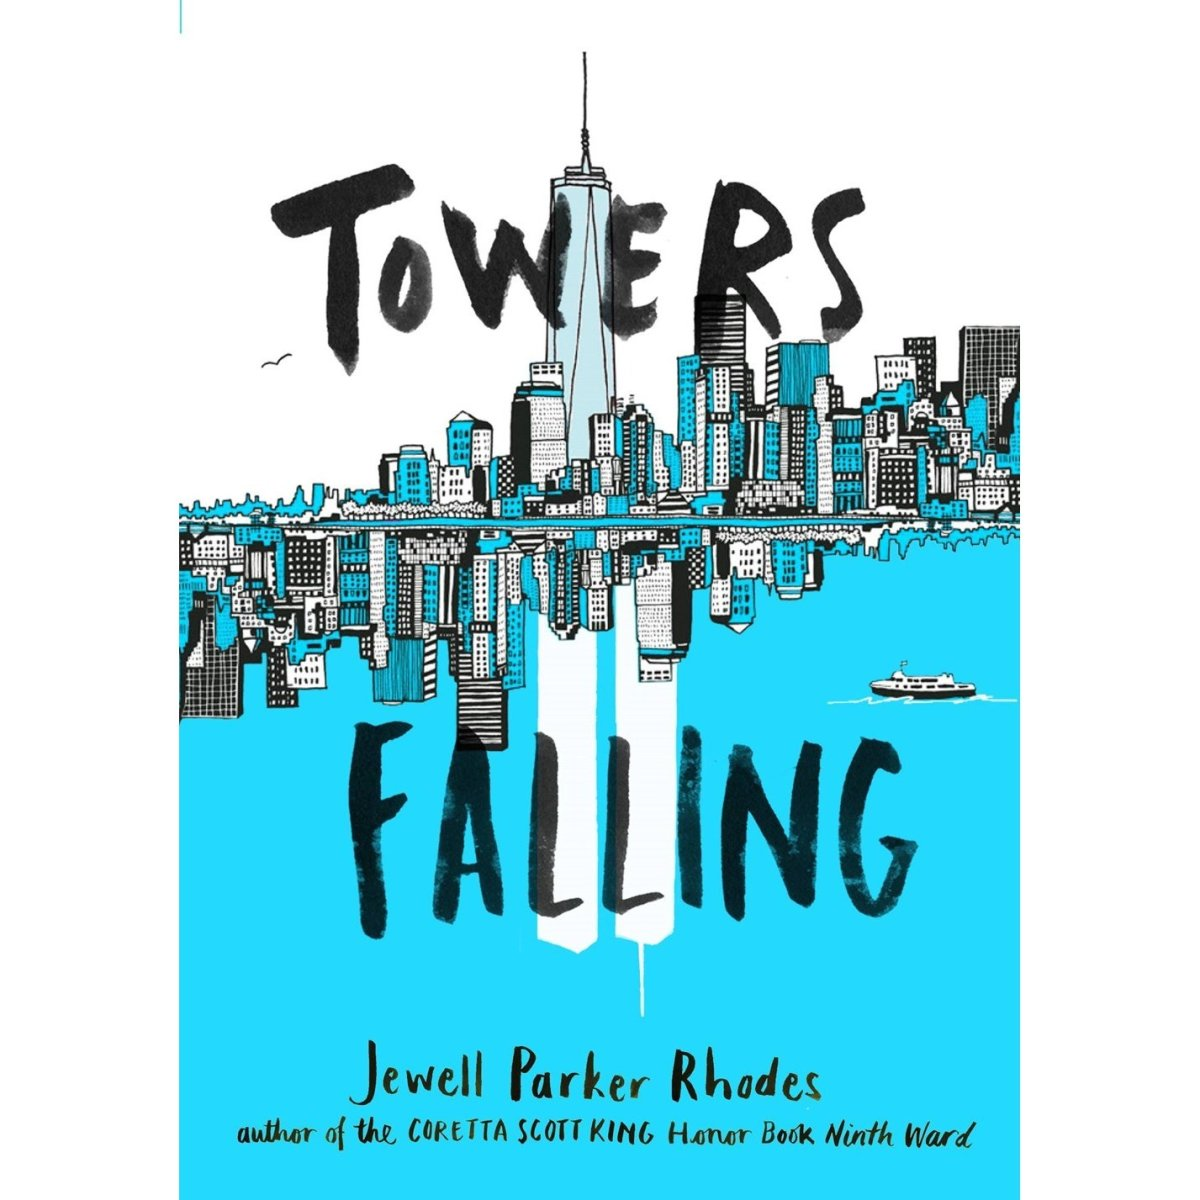 towers-falling-cover-image